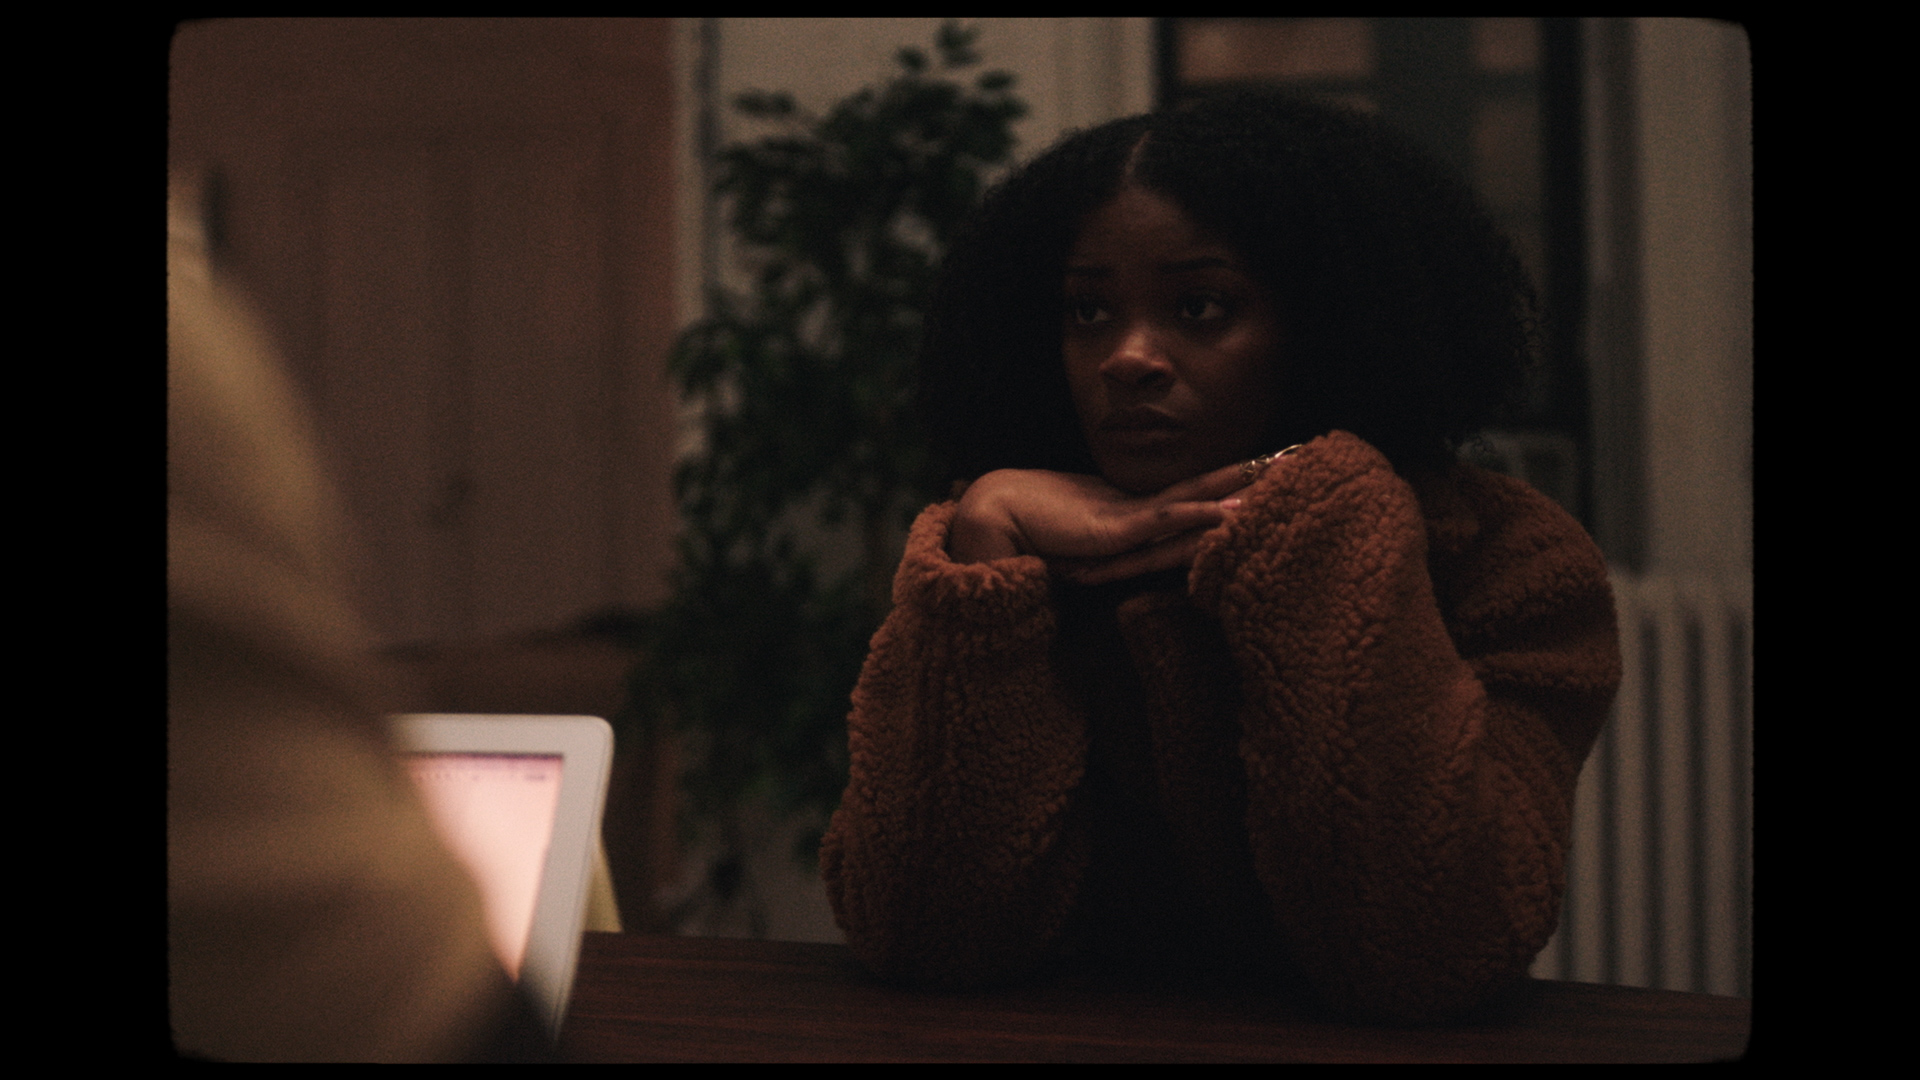 - shea butter baby (music Video)artist: ari lennox (feat. j cole)director: bennett johhnsonproduction co: dreambeardp: dan kennedyeditor: matt cartervfx: nic seresin @ The Underground NYcolorist: josh bohoskey @ the millsound design: sam costello